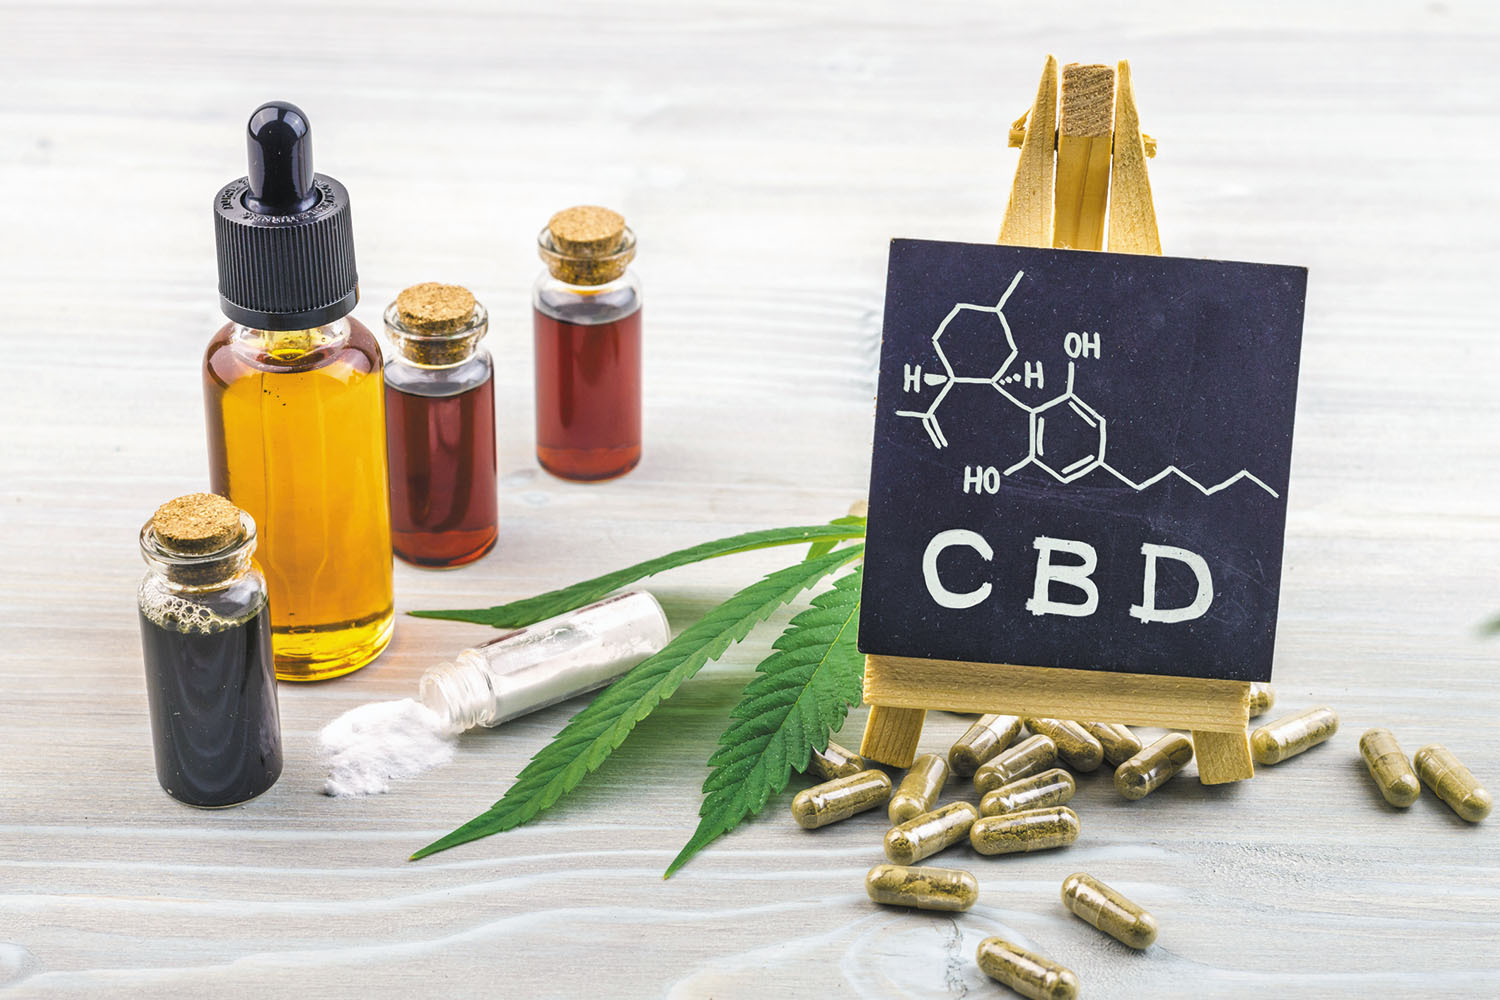 CBD products are everywhere  But do they work? - Harvard Health